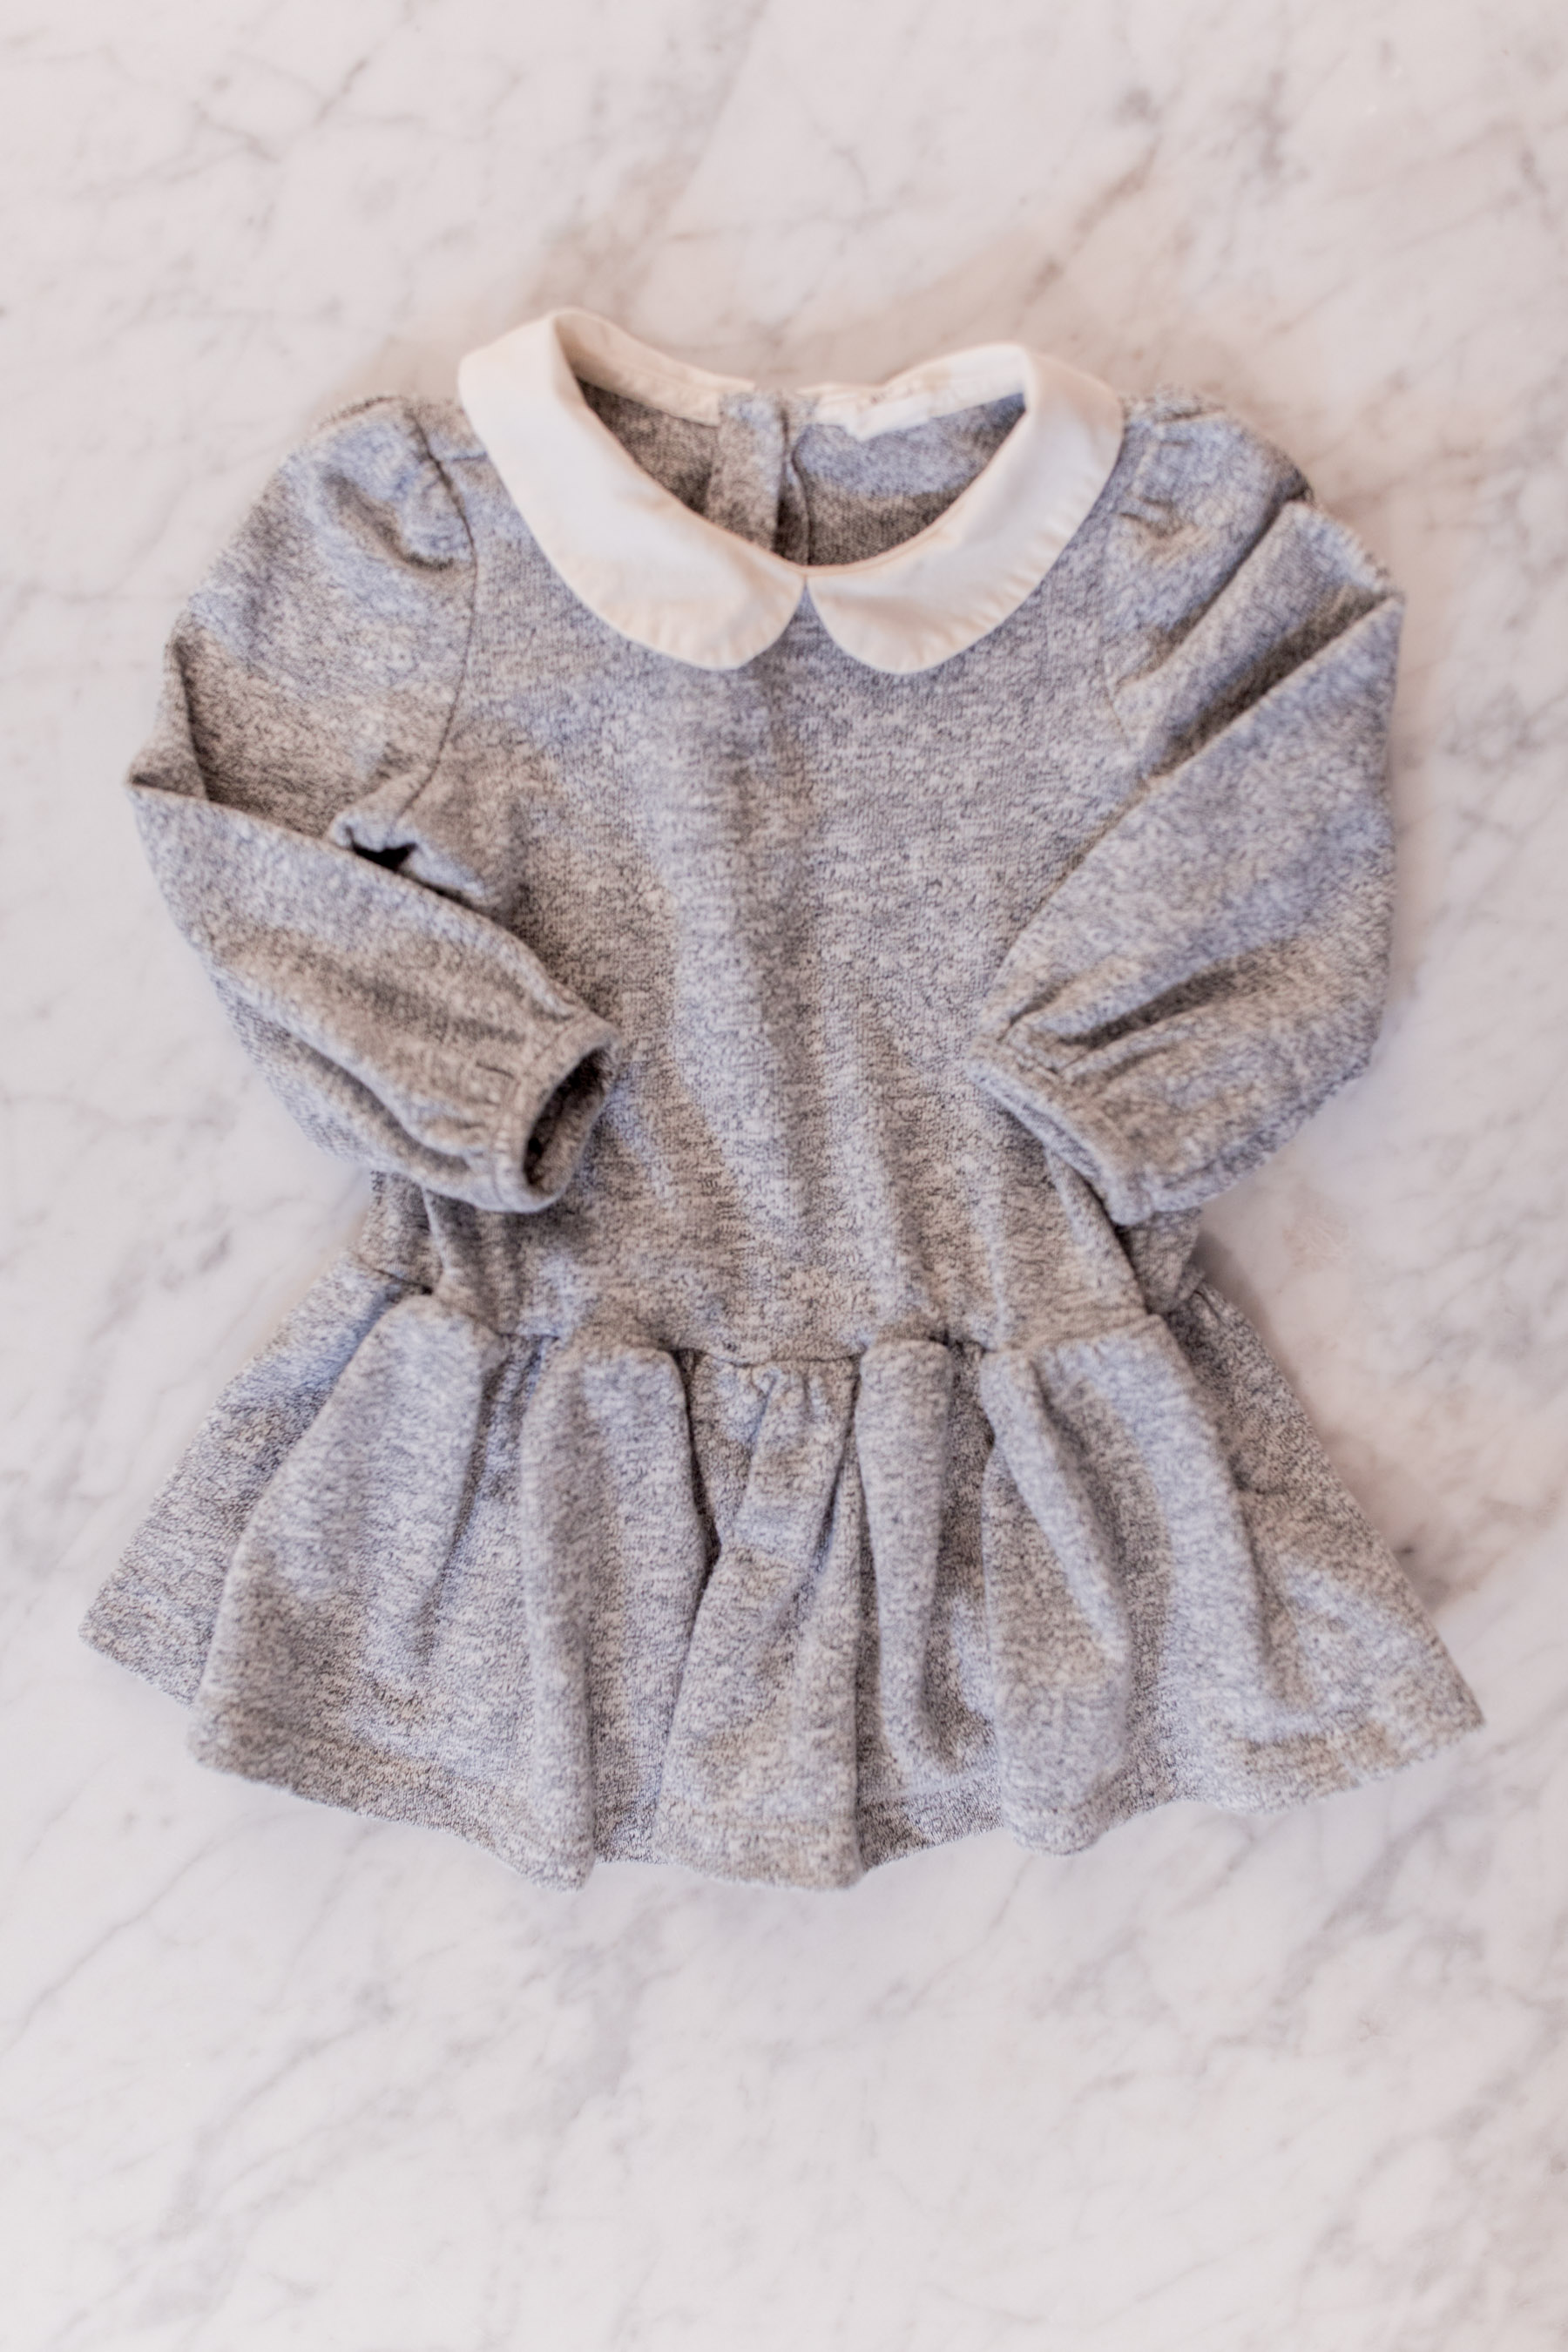 Emma s Fall Wardrobe The Most Stylish Fall Outfits For Toddlers